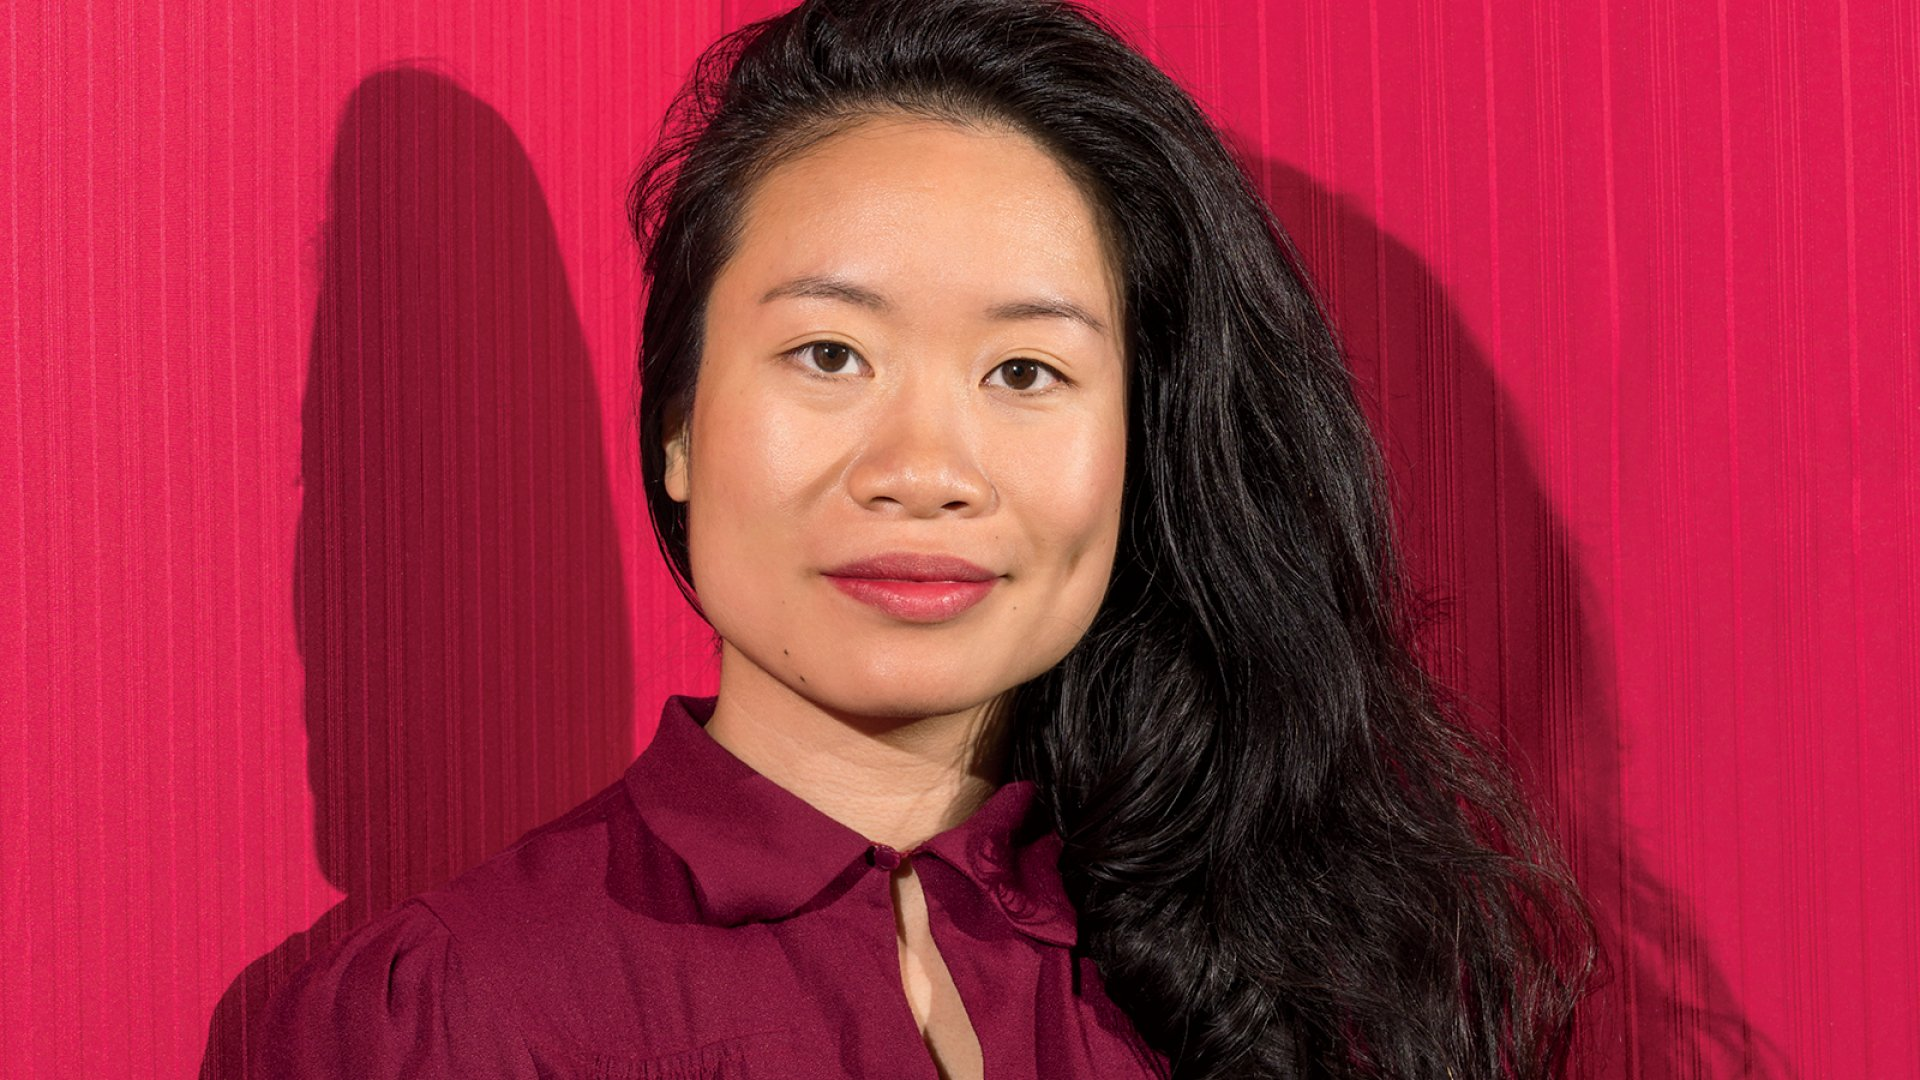 Nancy Hua, founder of the app-testing firm Apptimize, which works with companies like Starbucks and HotelTonight.